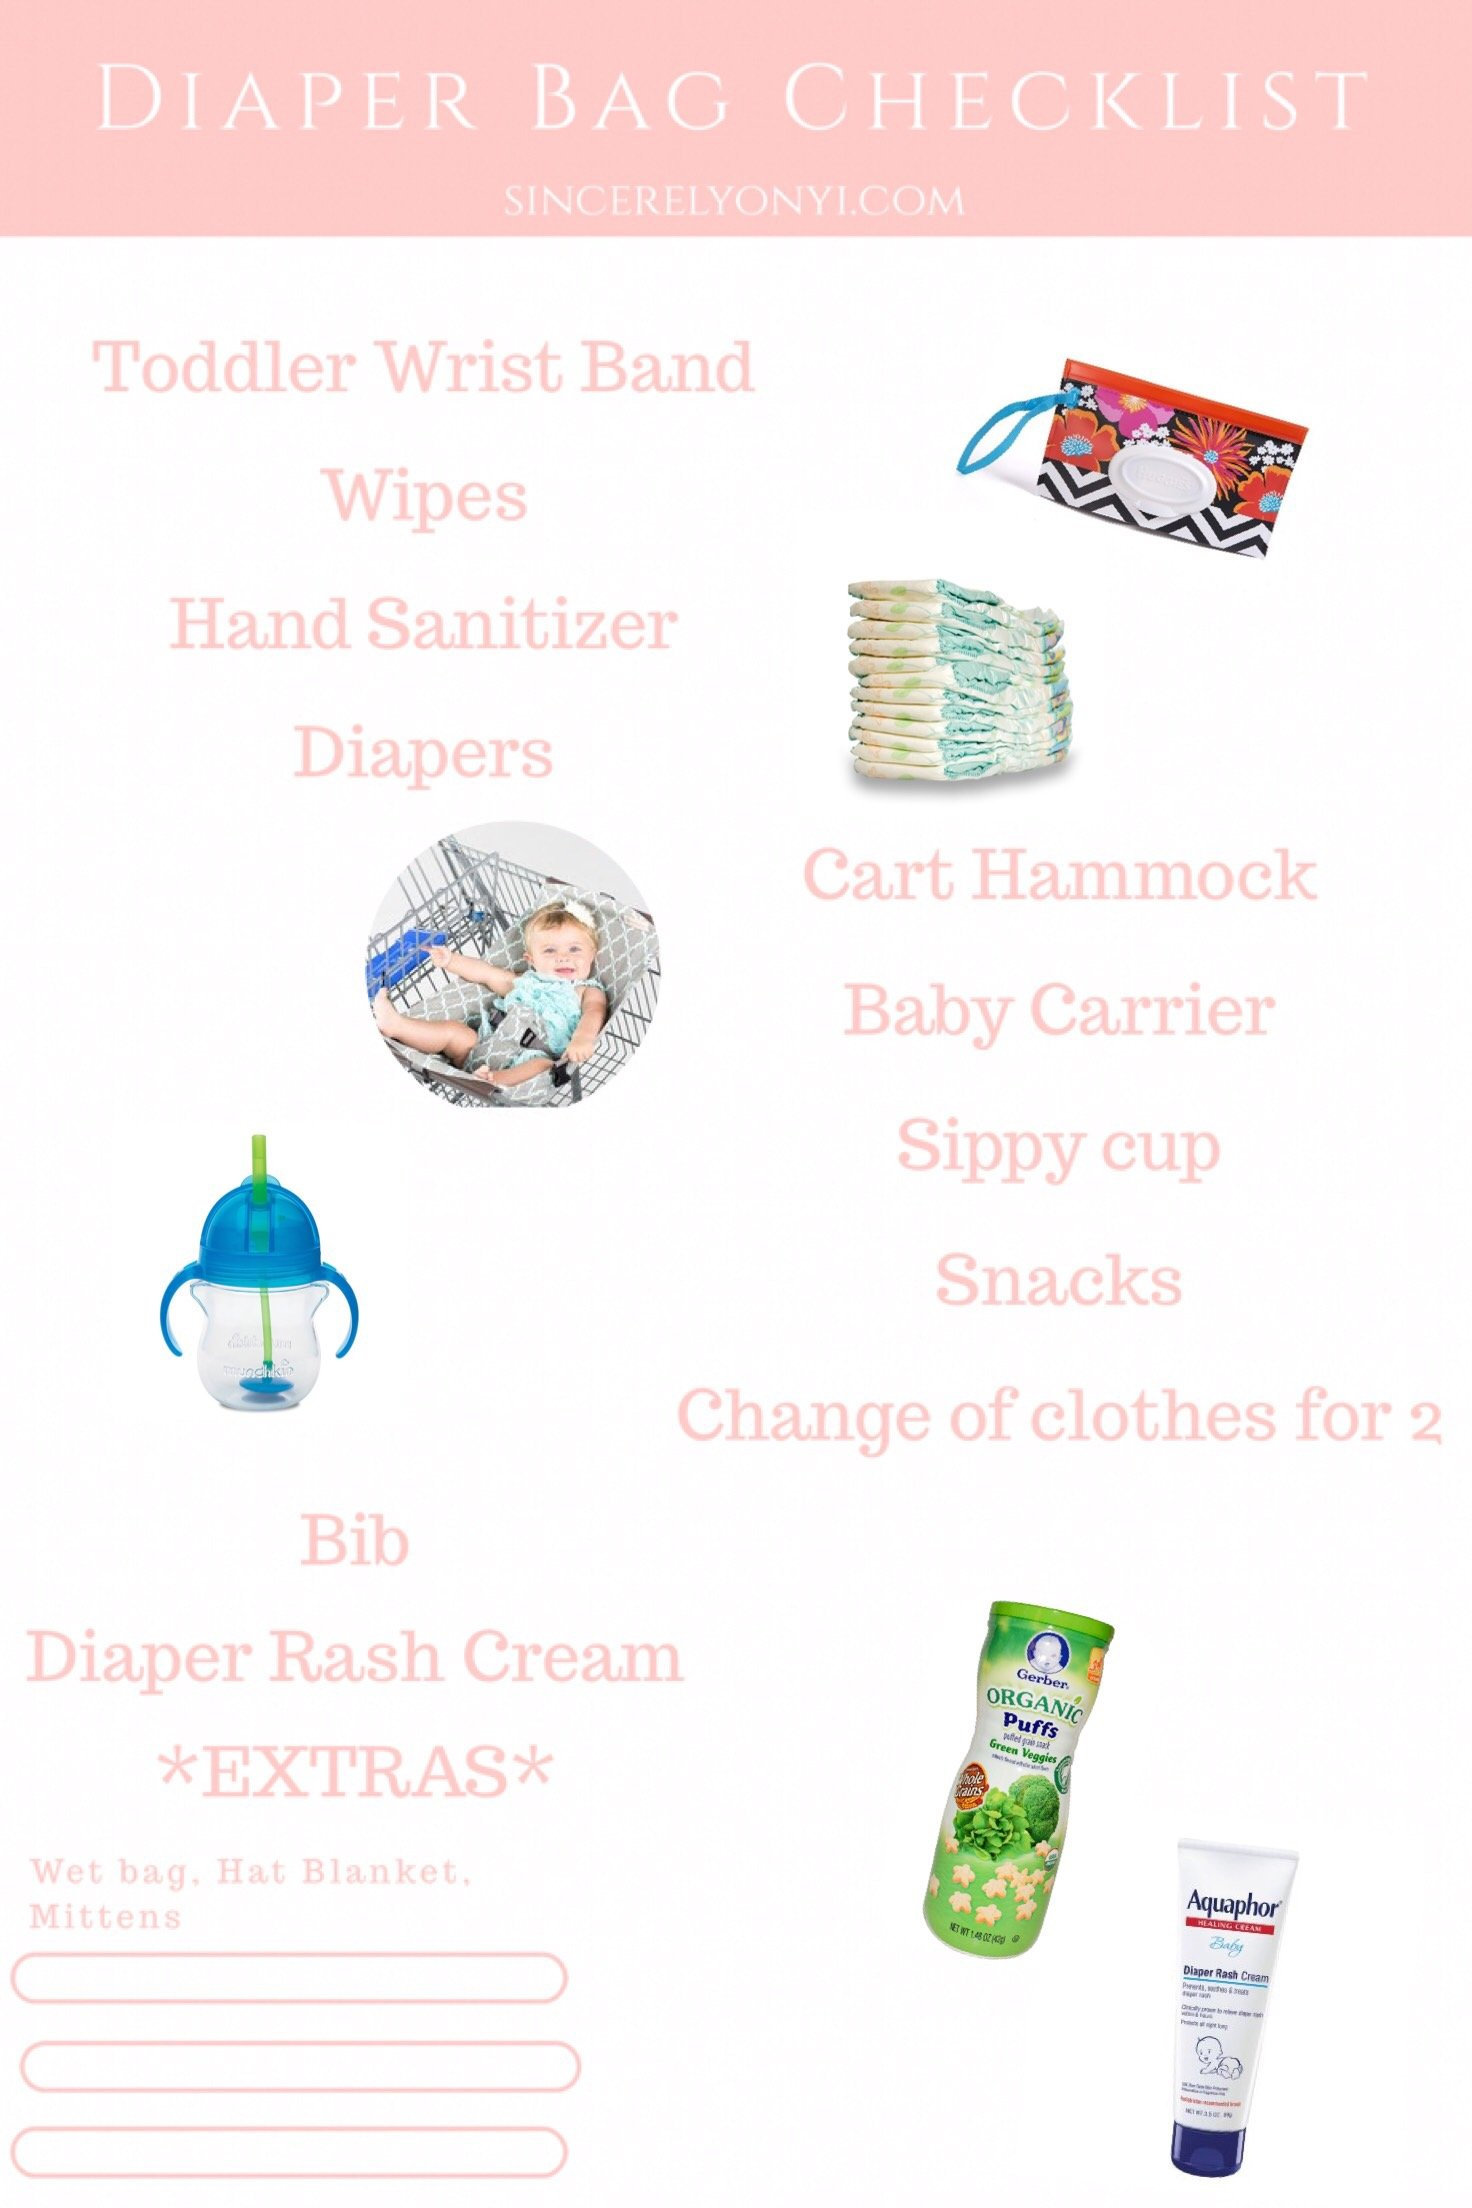 Checklist Click Here Or Scroll To Find Out What I Love Having In My Diaper Bag And Why